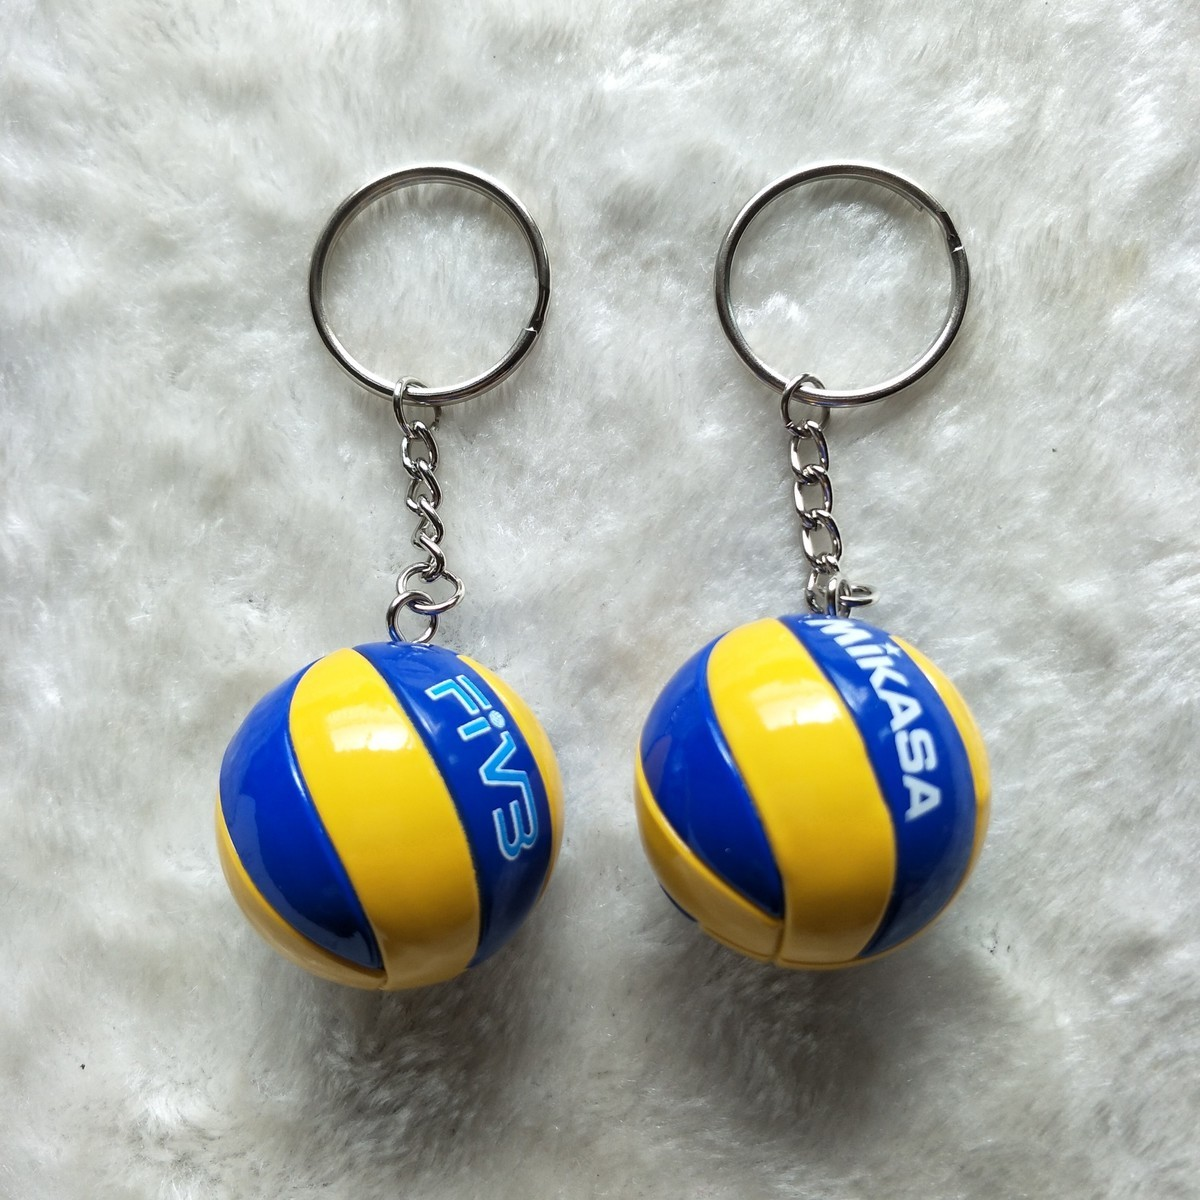 3 7 Cm Funny Sport Beach Volleyball Keychain Car Key Ring Birthday Business Gifts Volleybal Sleutelhanger Chaveiros Key Buckle Aliexpress